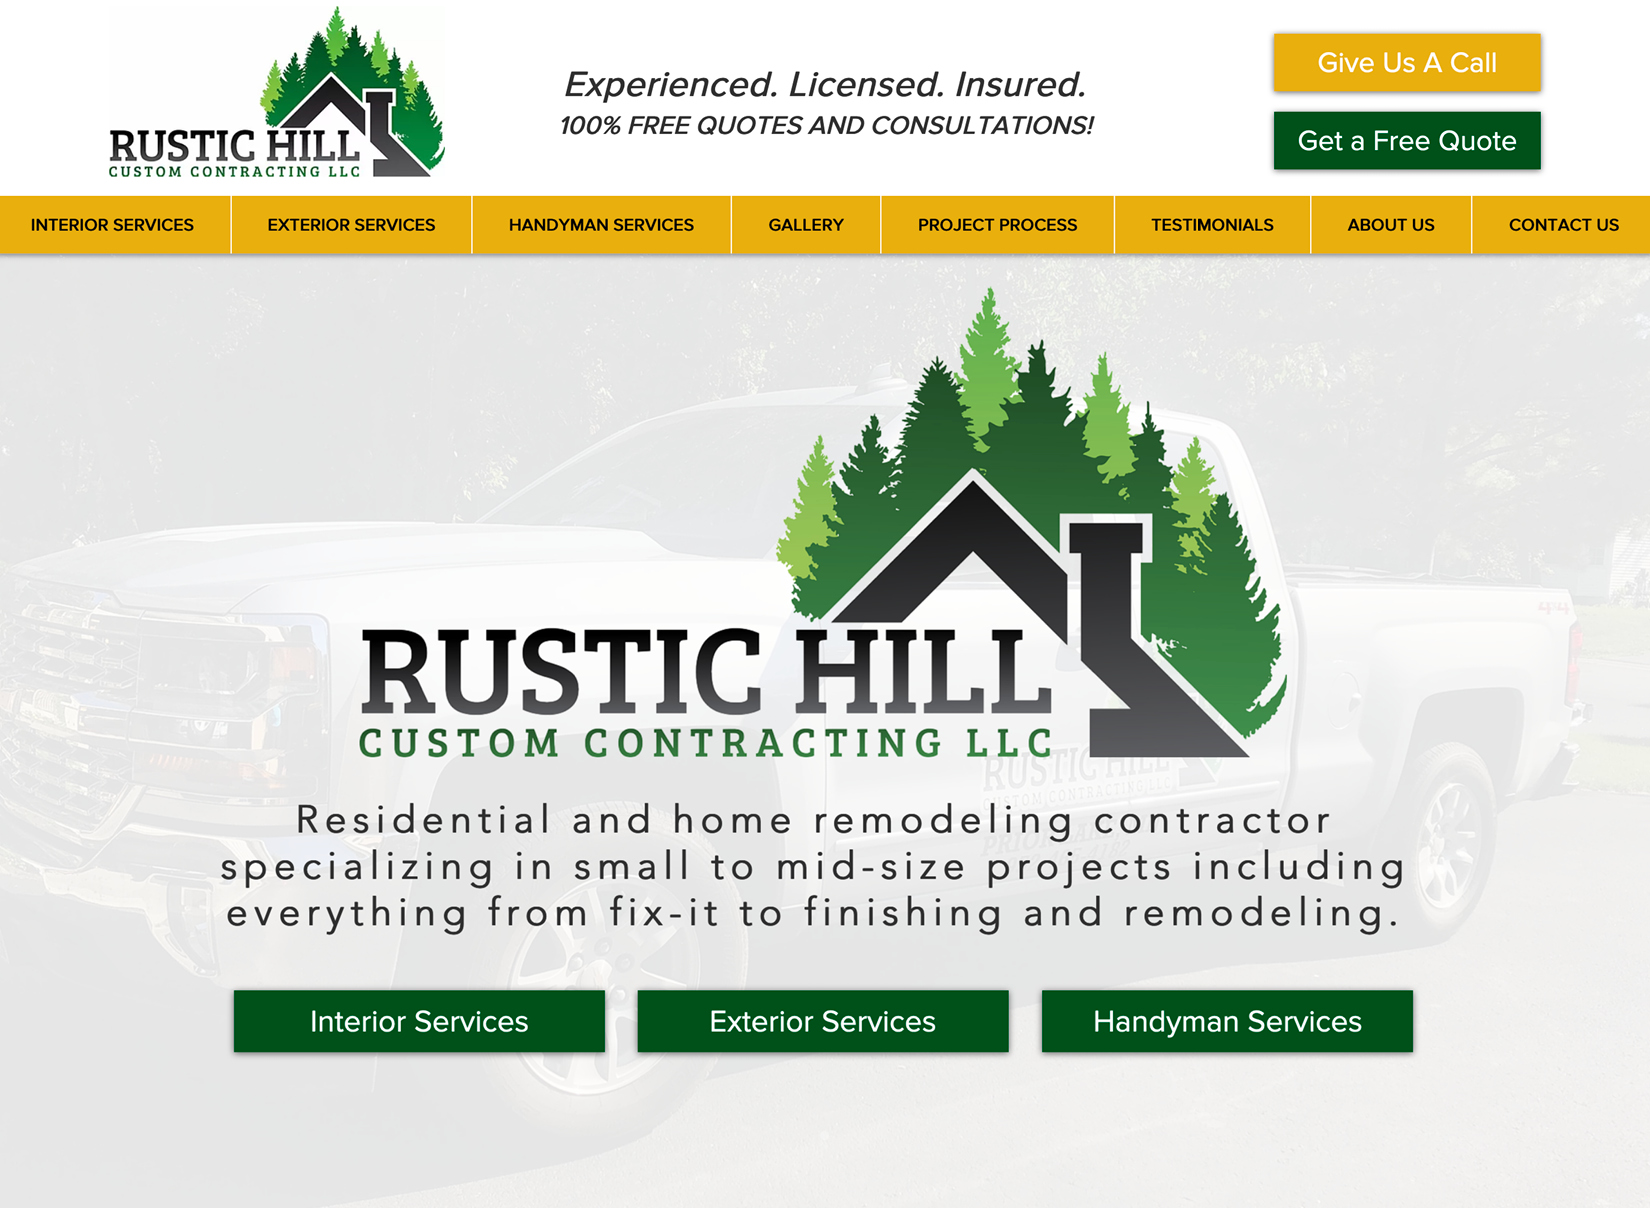 Rustic Hill Custom Contracting